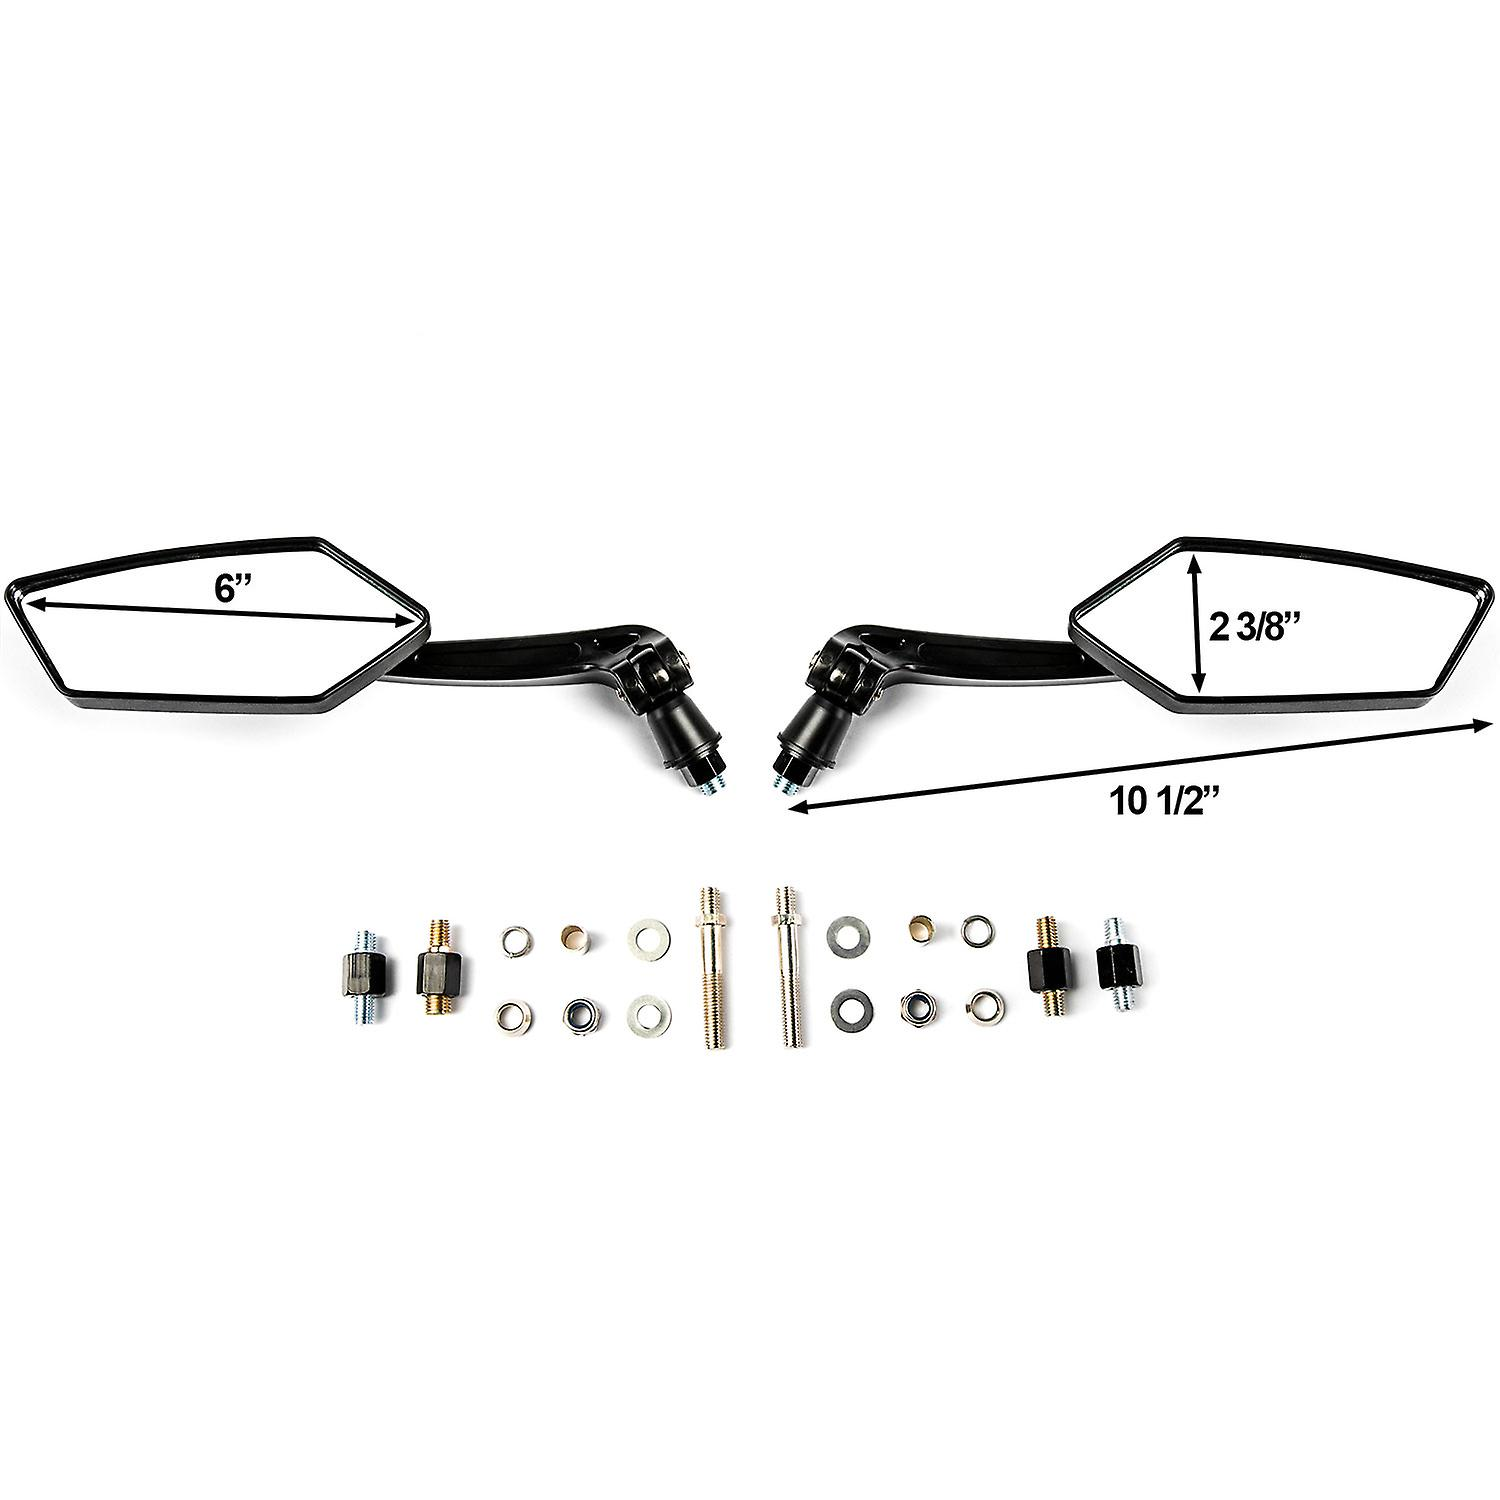 Custom Rear View Mirrors Black Pair w/Adapters For